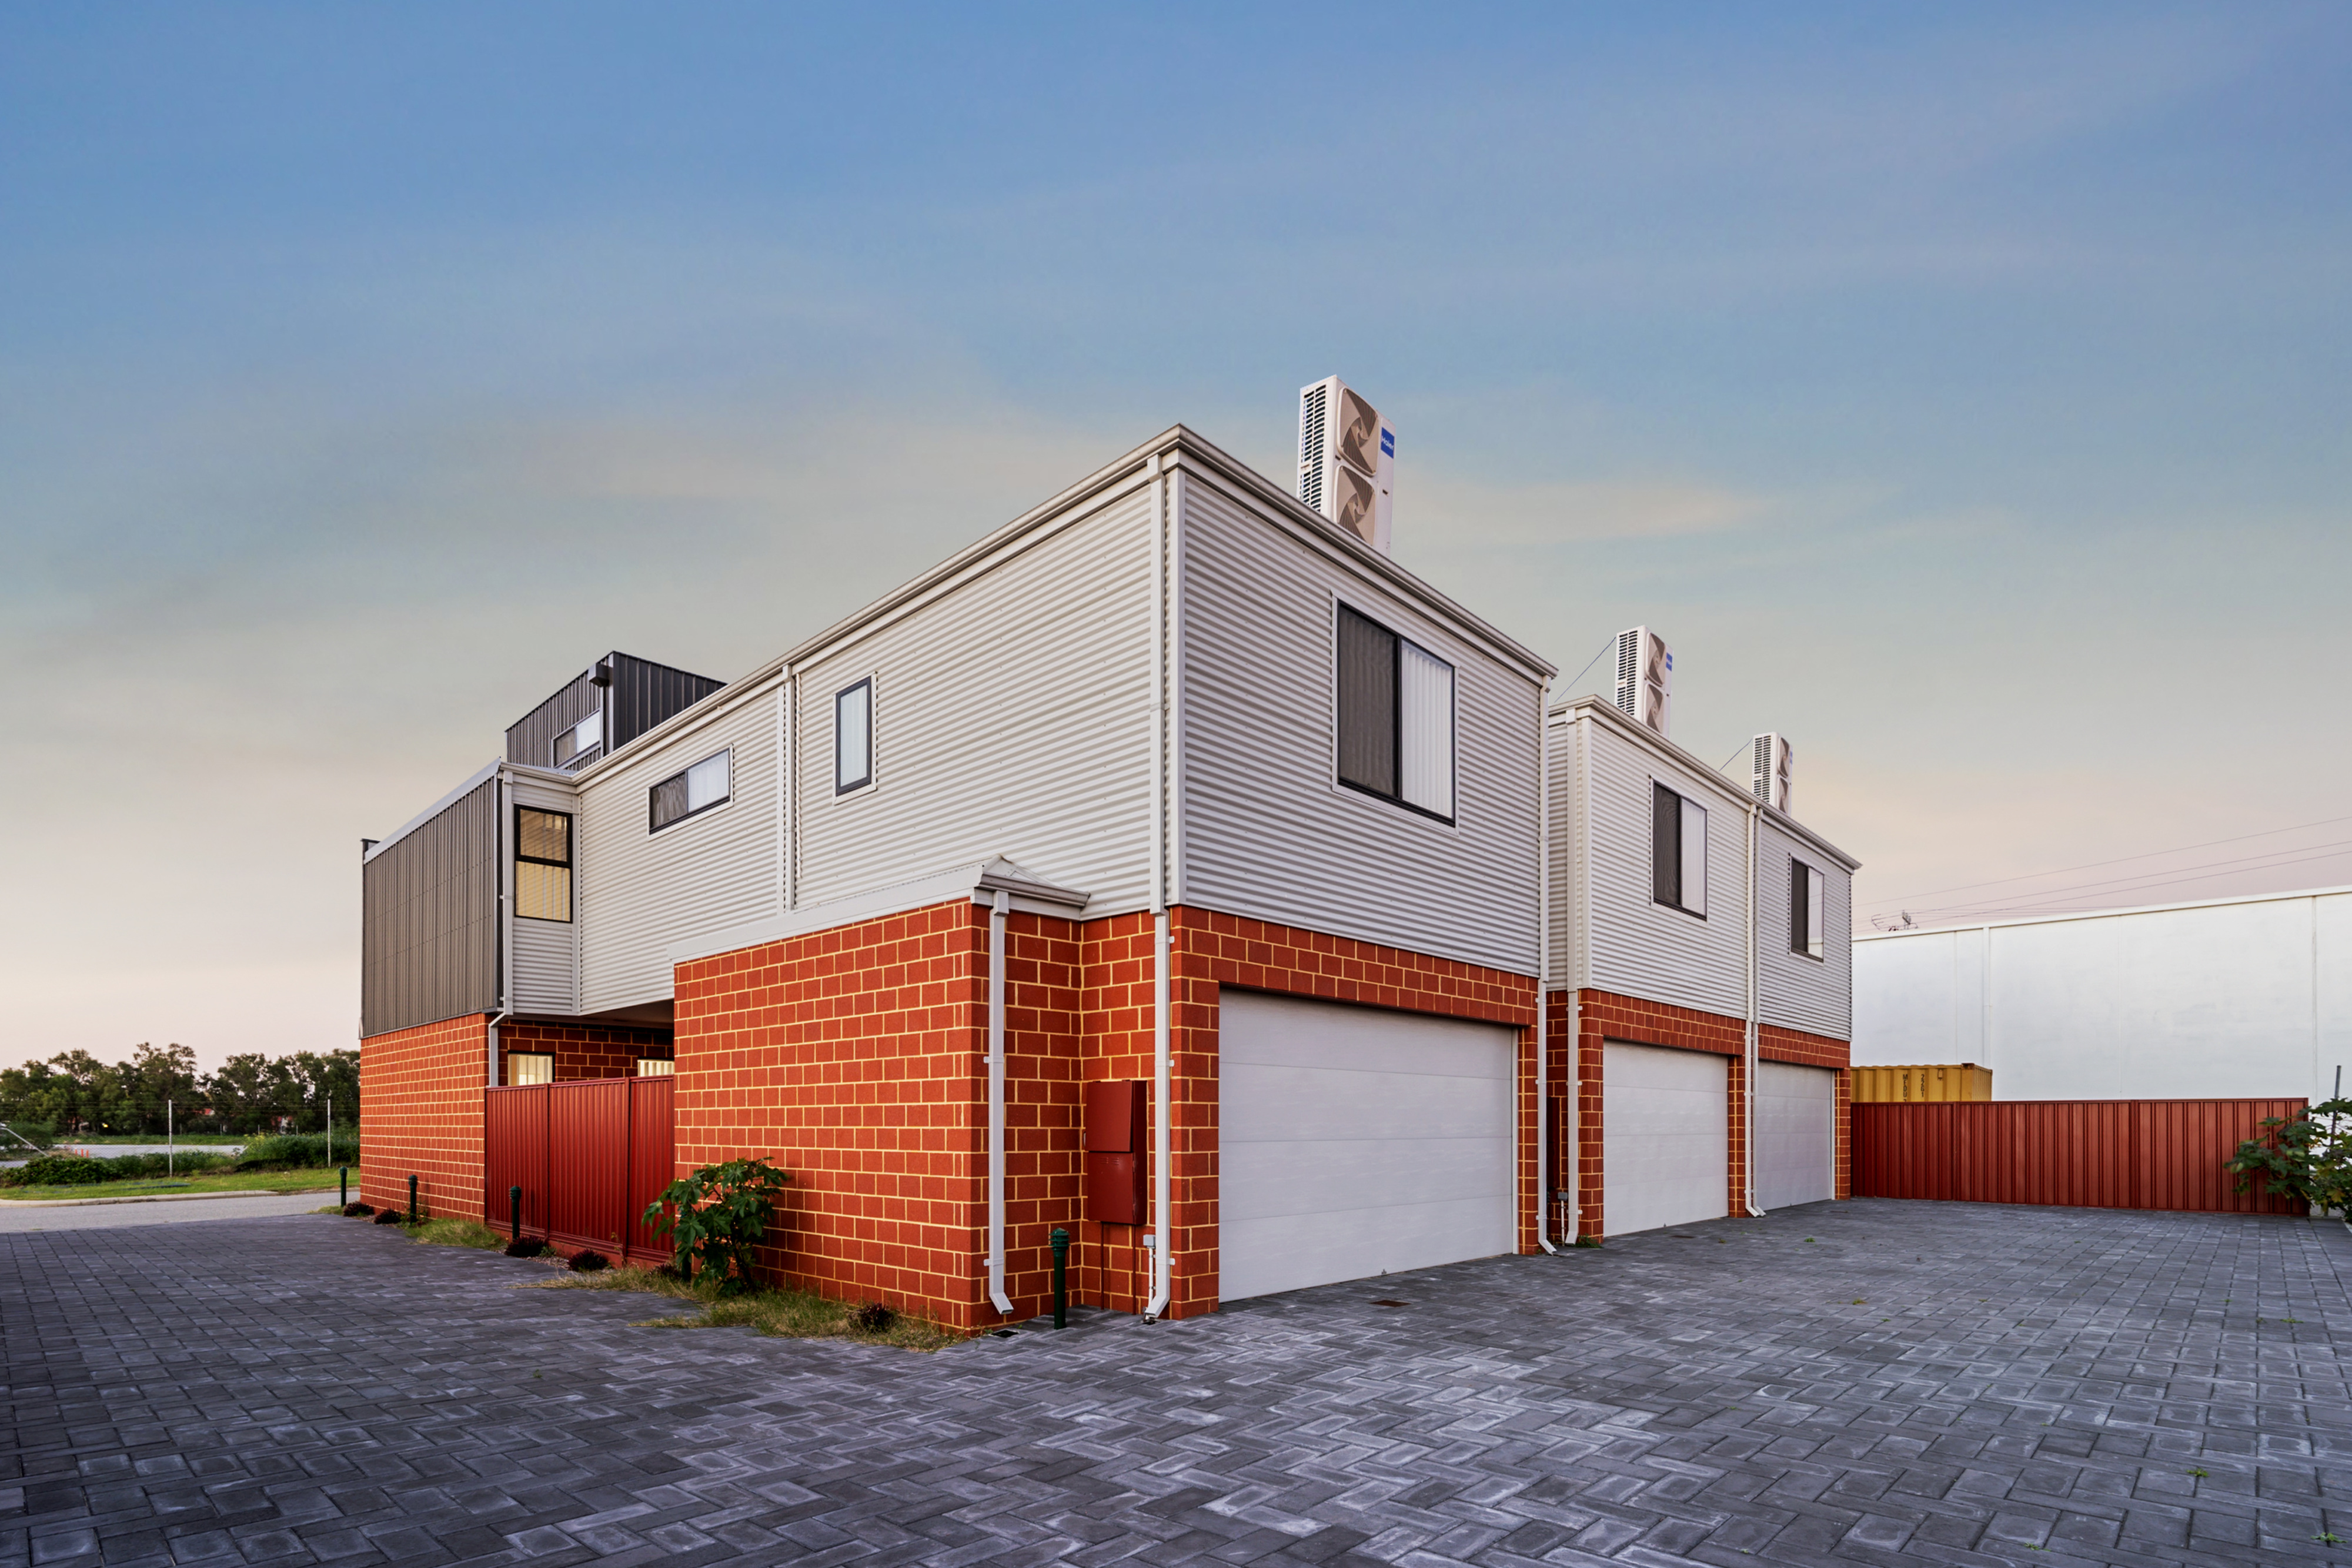 1/3 Garston Way North Coogee - House For Sale - 22479574 - Acton Coogee